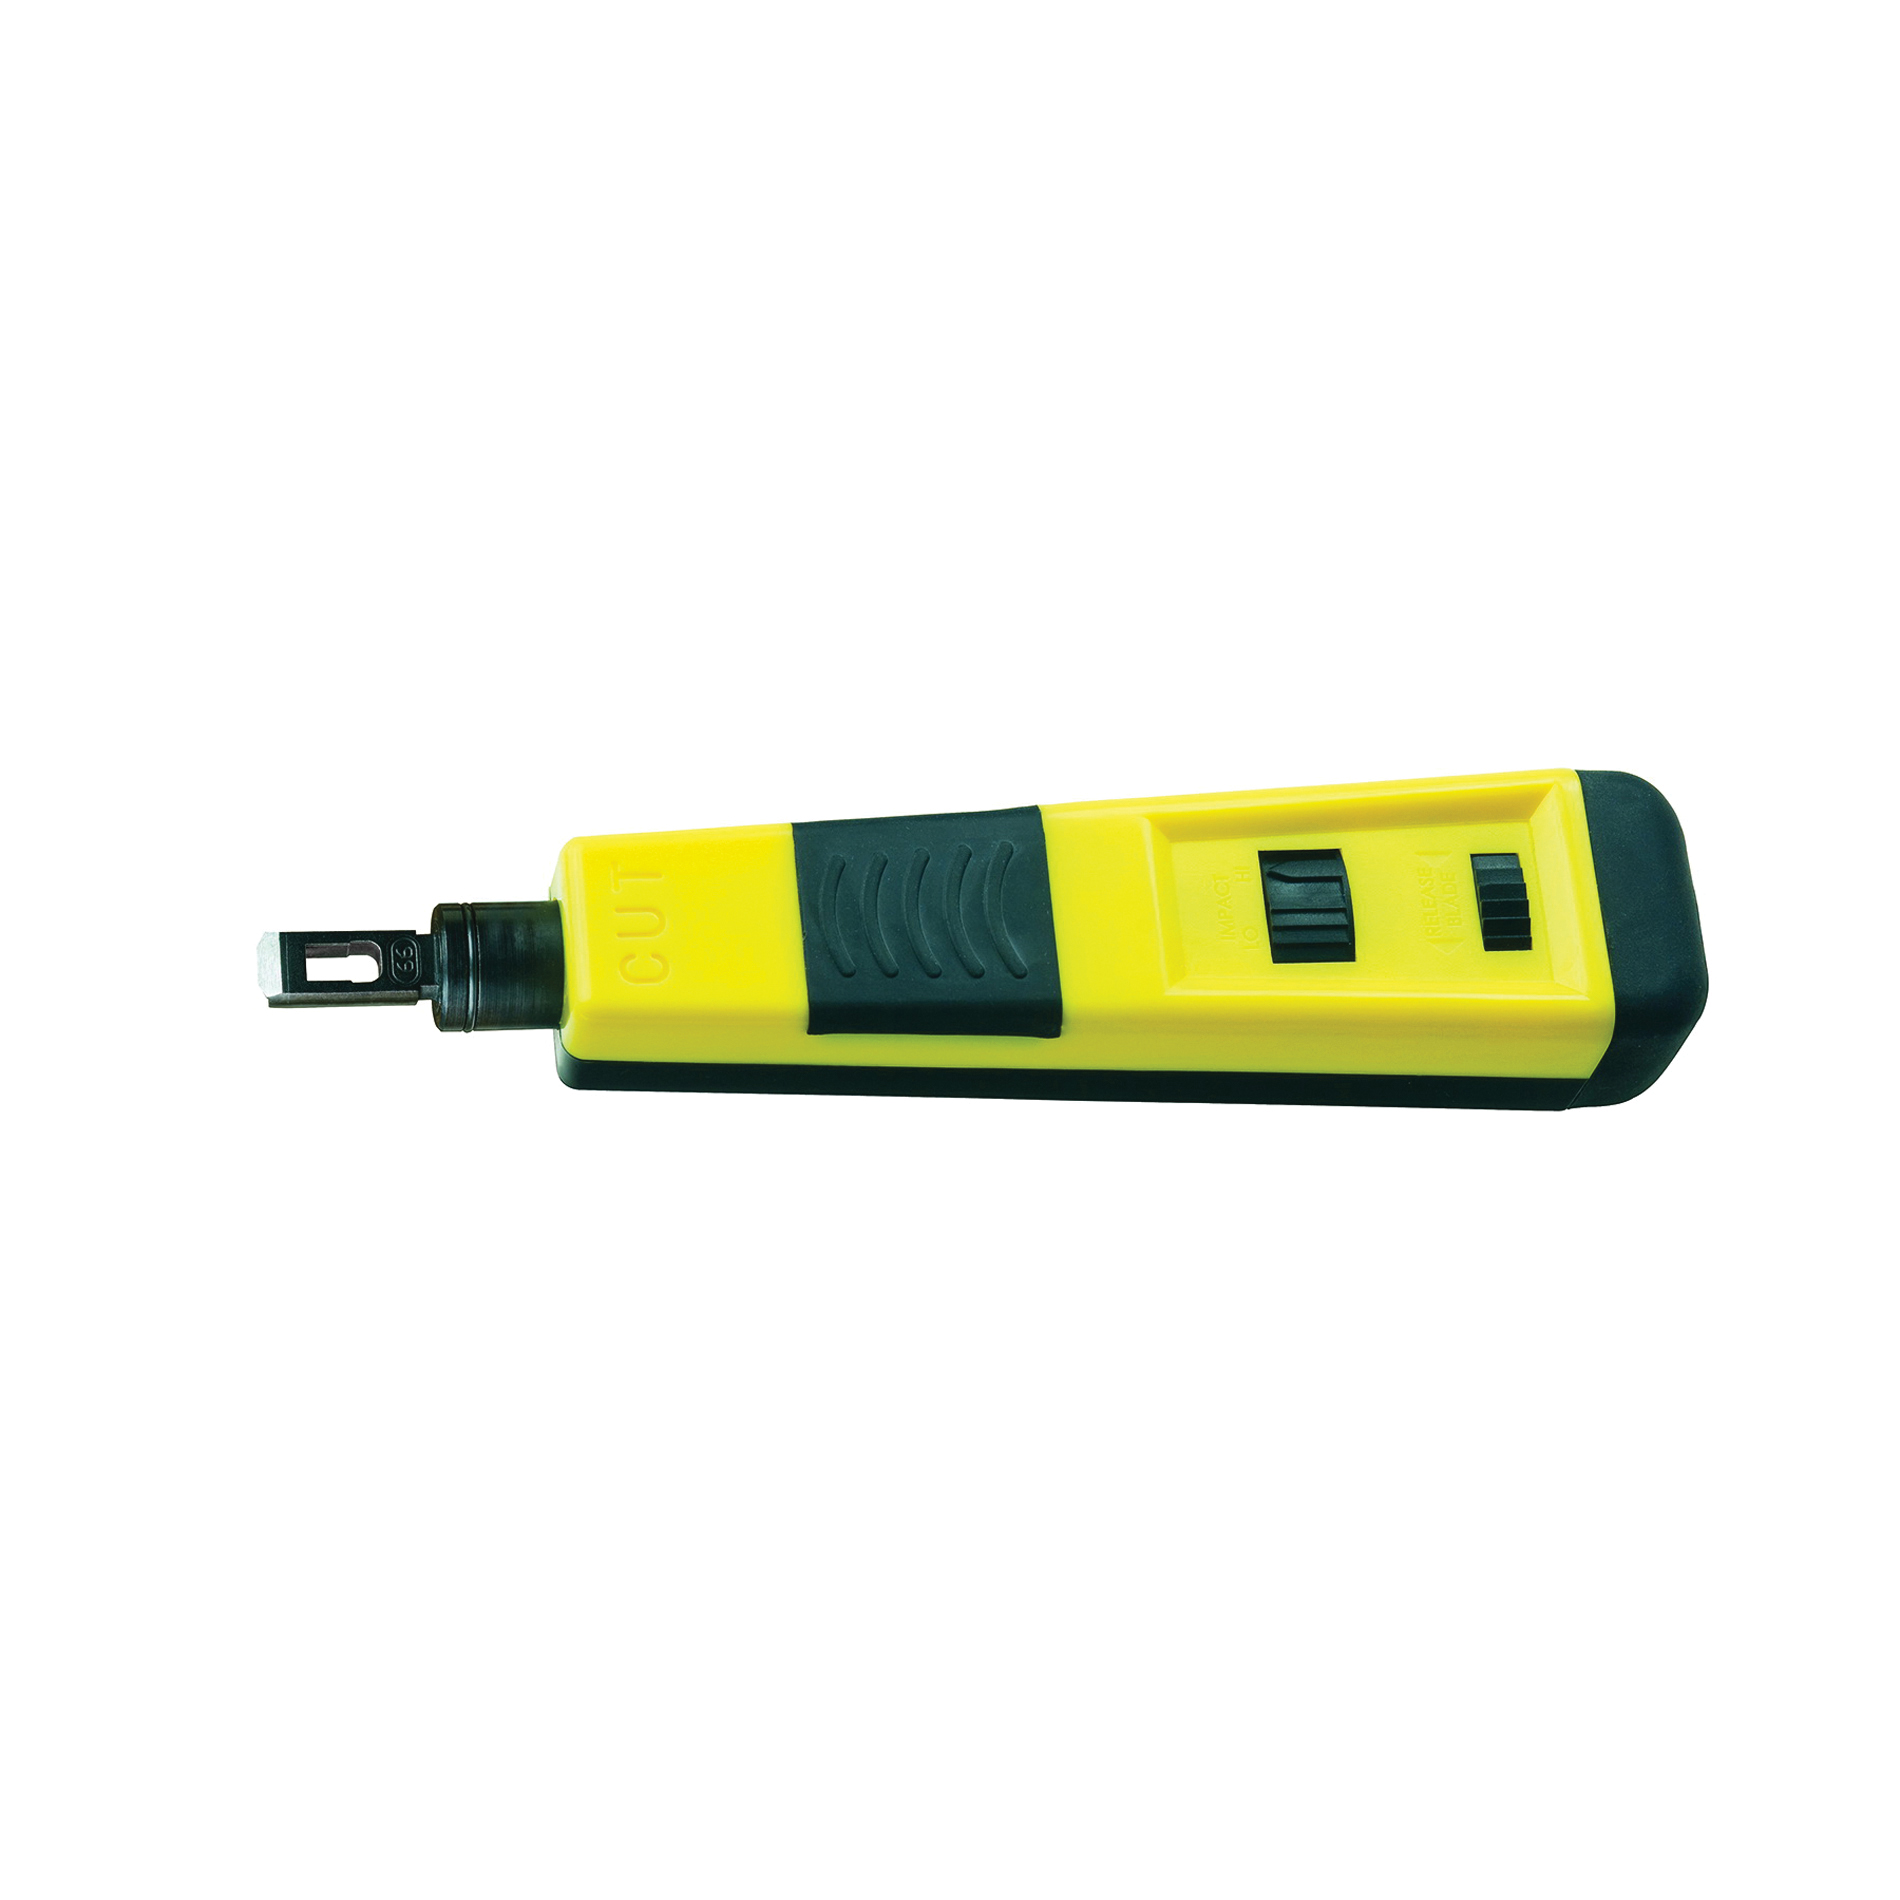 Bussmann FP-2 Fuse Puller, 13/32 to 13/16 in Dia Fuse, For Use With Fuse